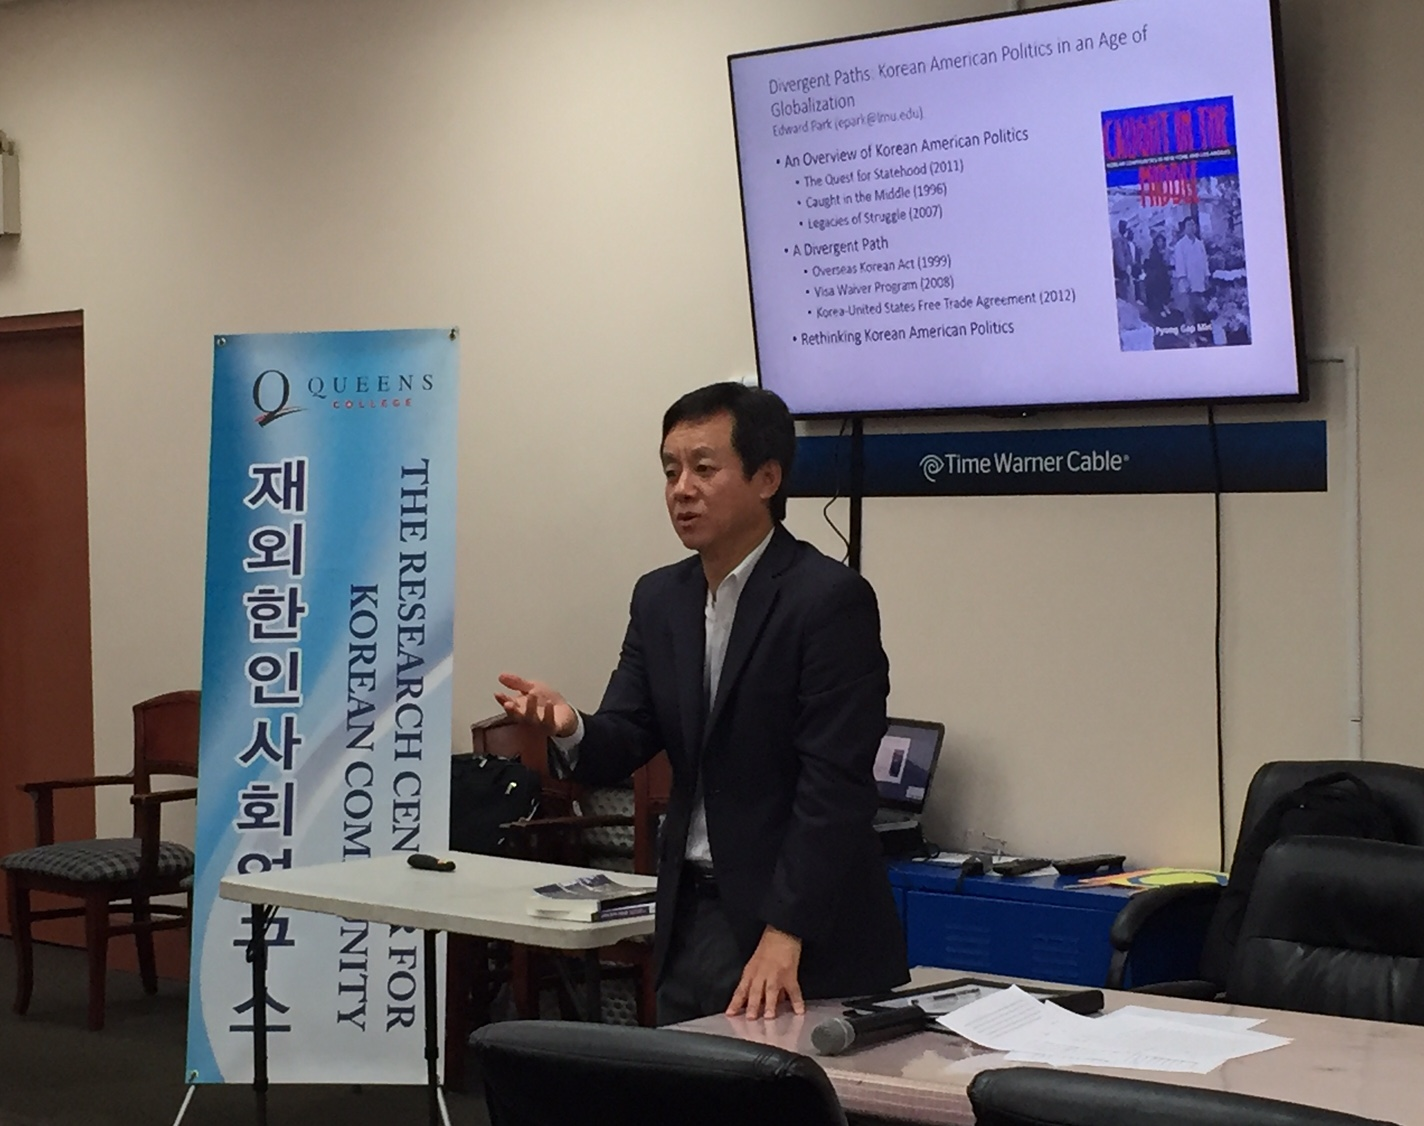 Edward Park SeminarPic Sep27 2016